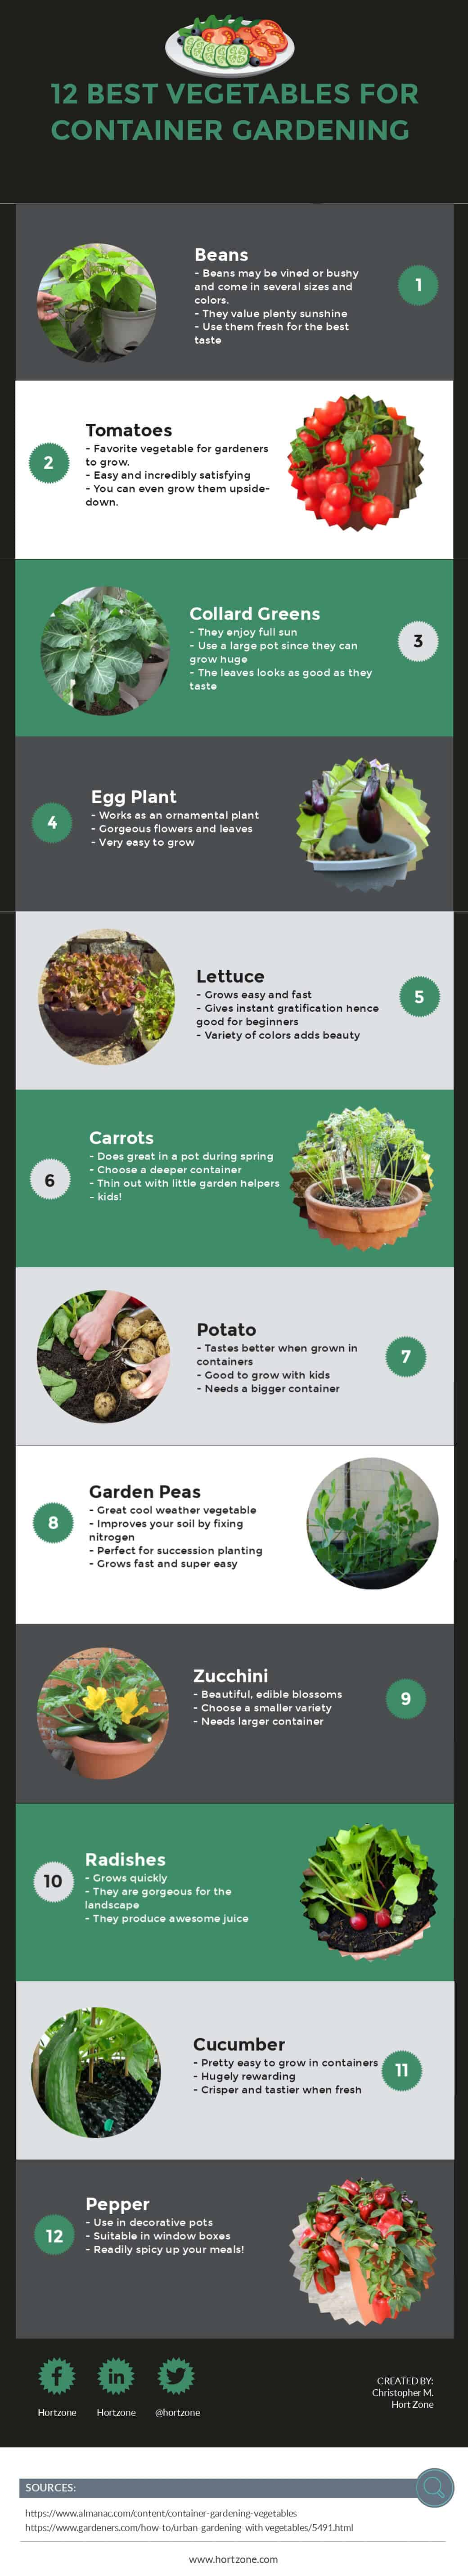 12 Best Vegetables for Container Gardening